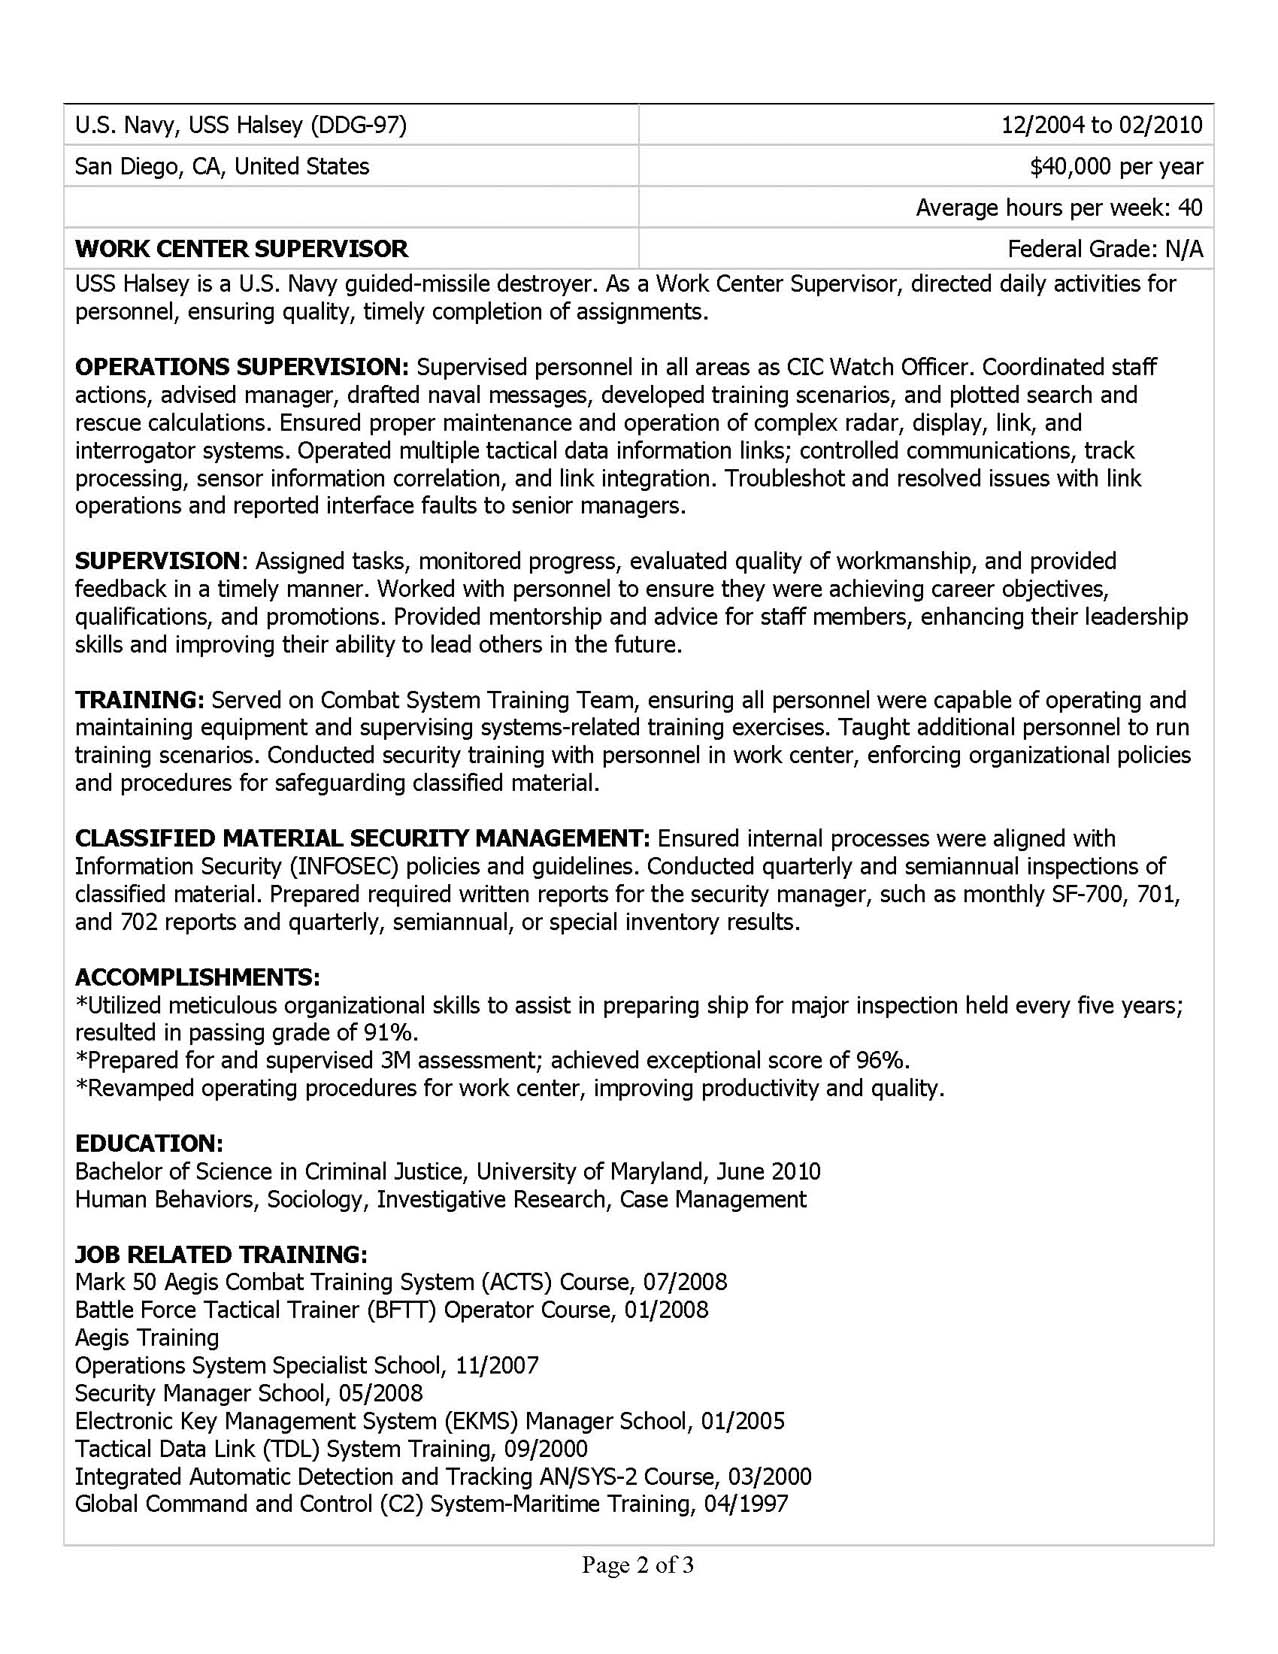 veteran resume writing services best military to civilian service usajobs sample bank Resume Military Resume Service